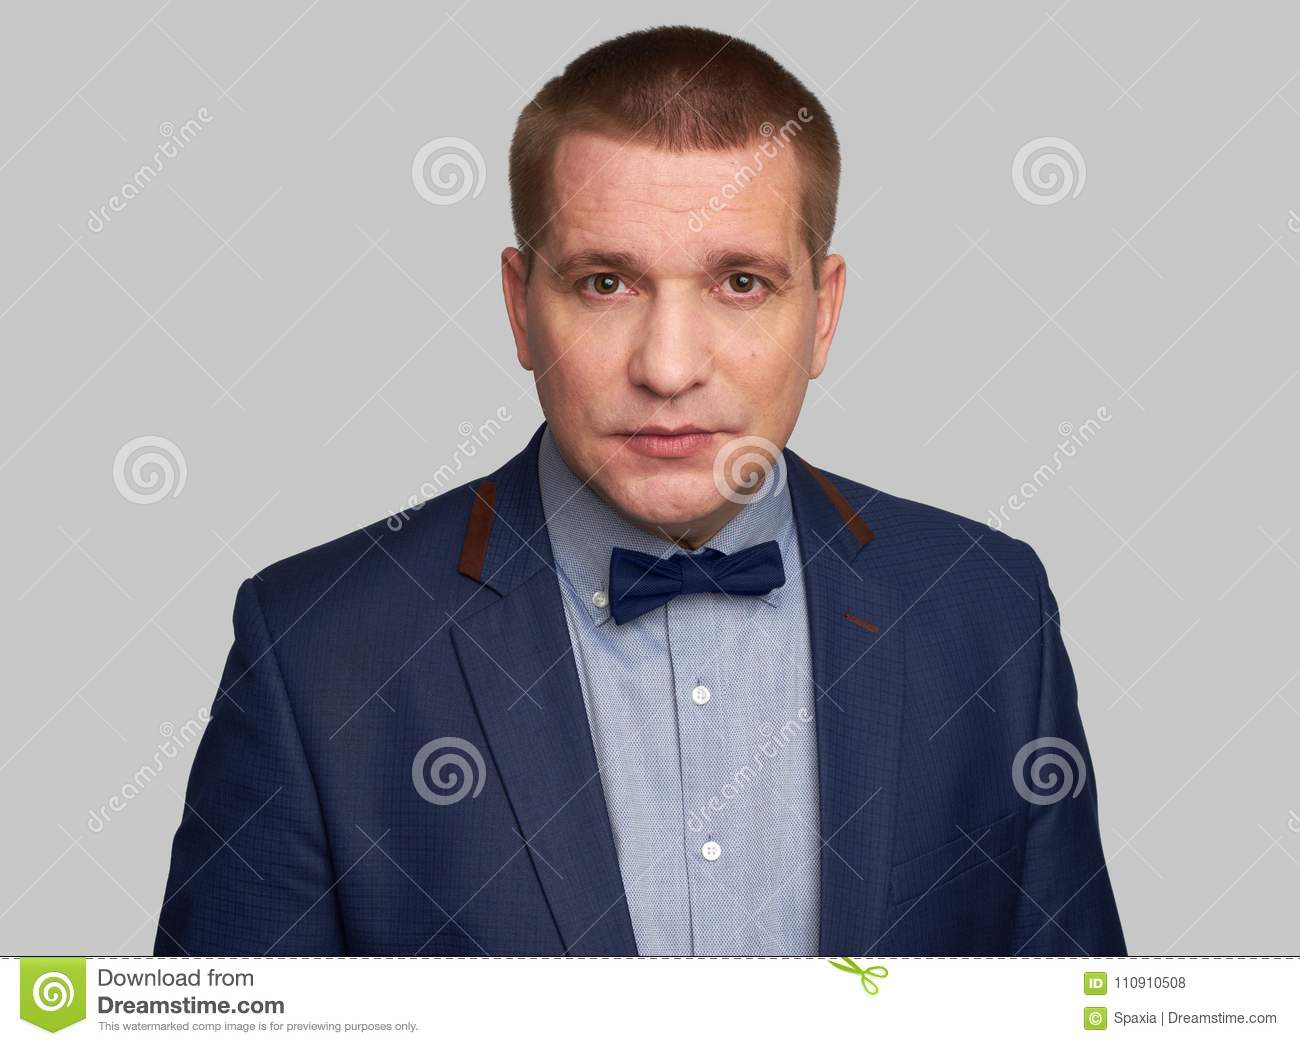 c5c8d0f7c160 Handsome man in blue suit and bow tie isolated on grey background. More  similar stock images